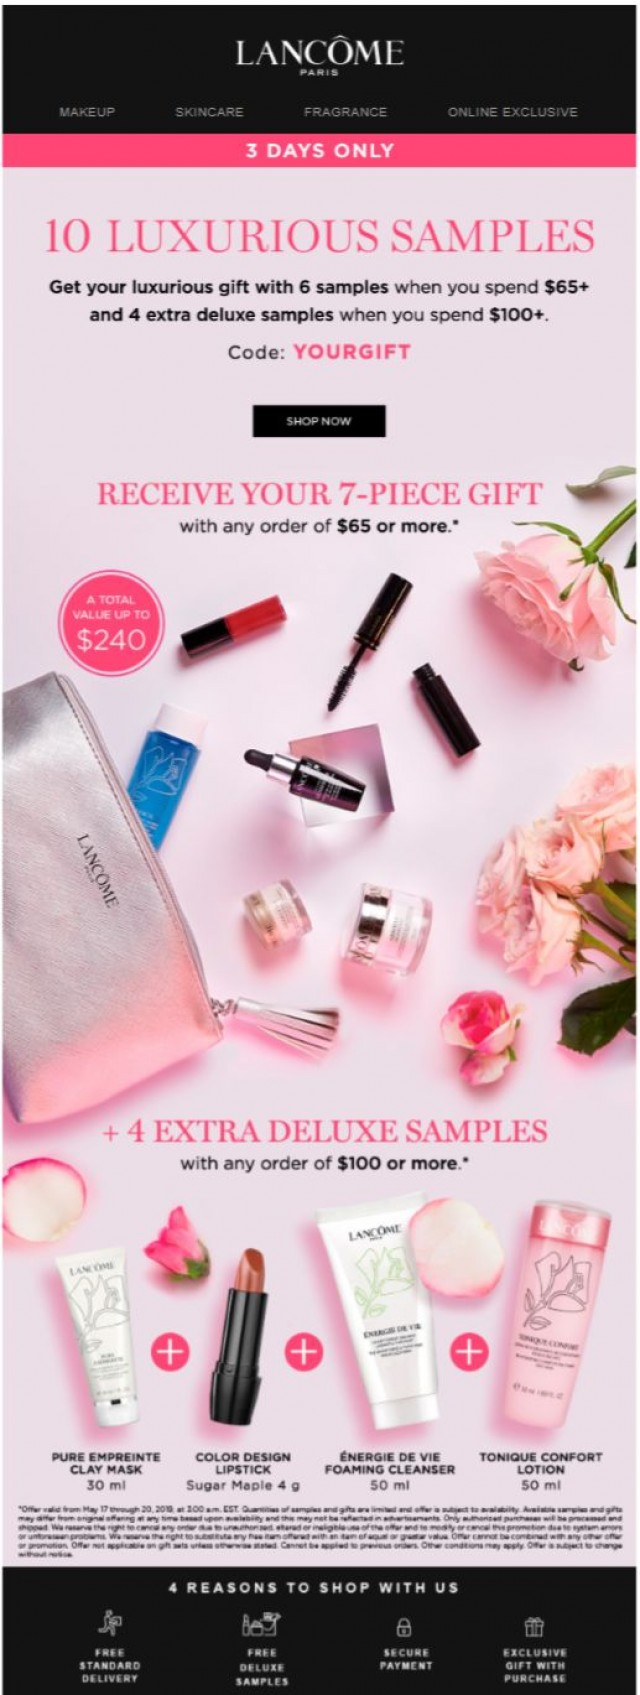 Coupon for: Lancolme - Enjoy 10 FREE Deluxe Samples